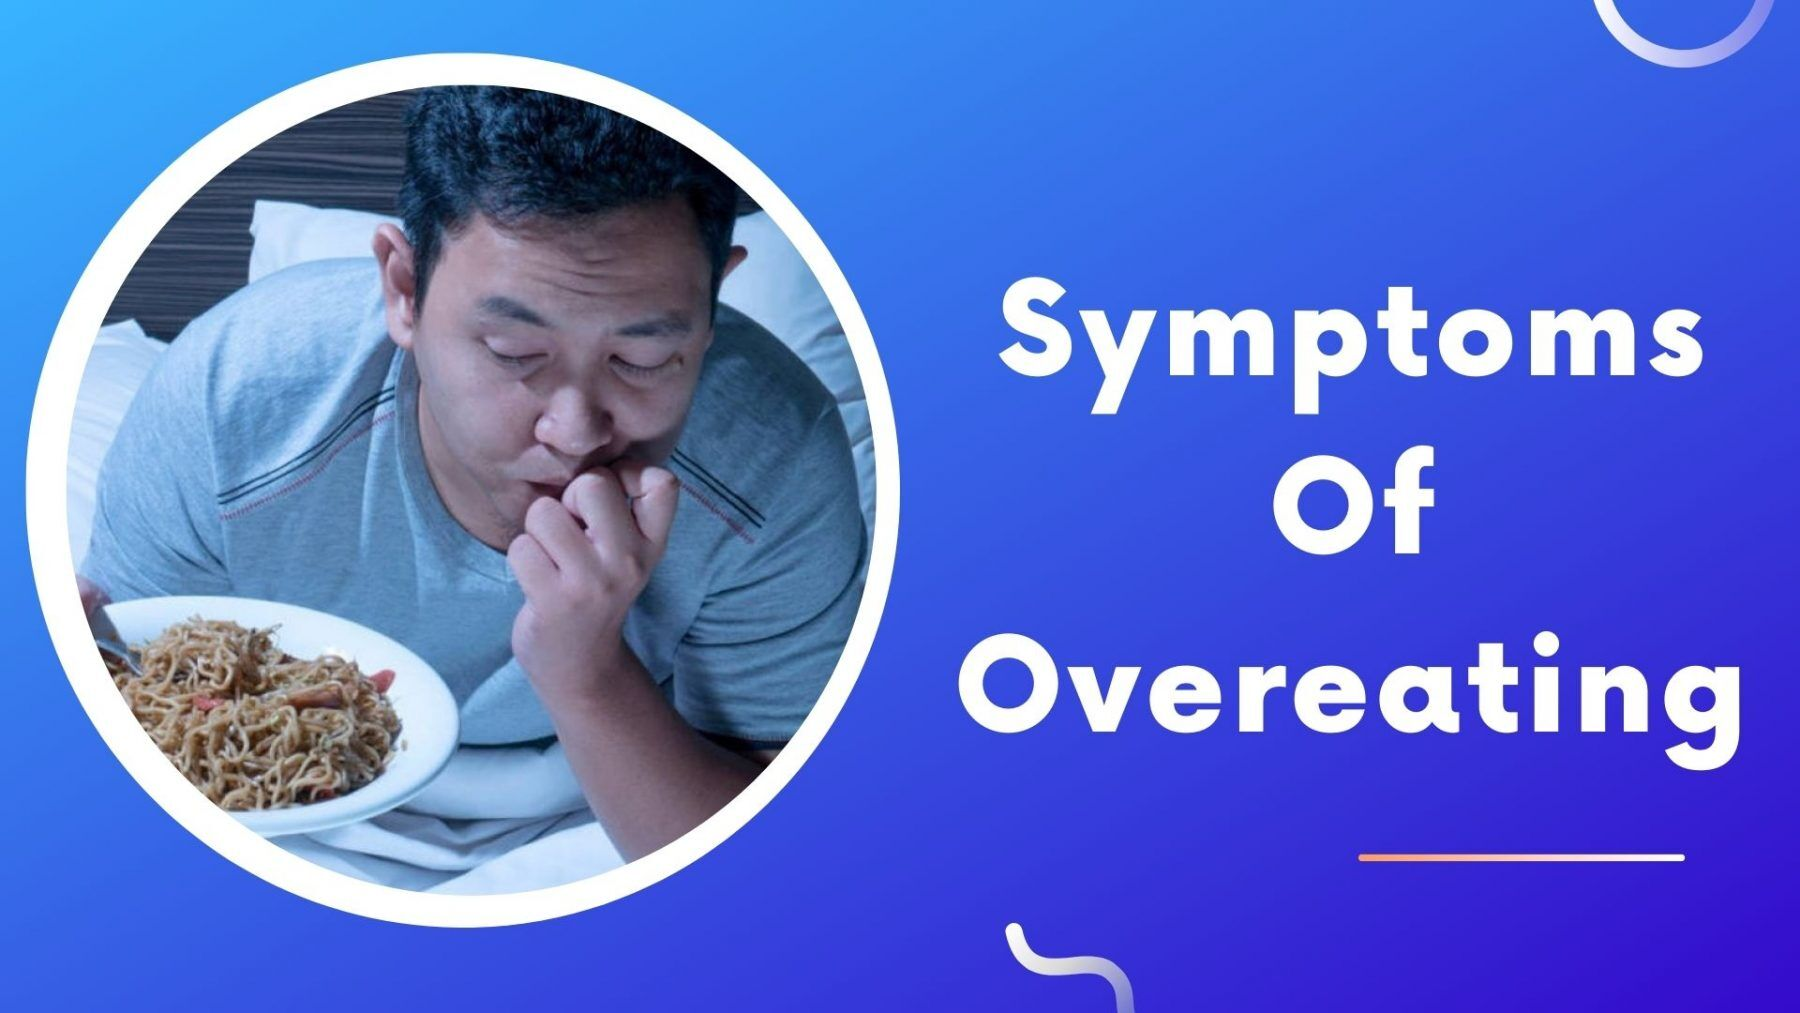 Symptoms Of Overeating